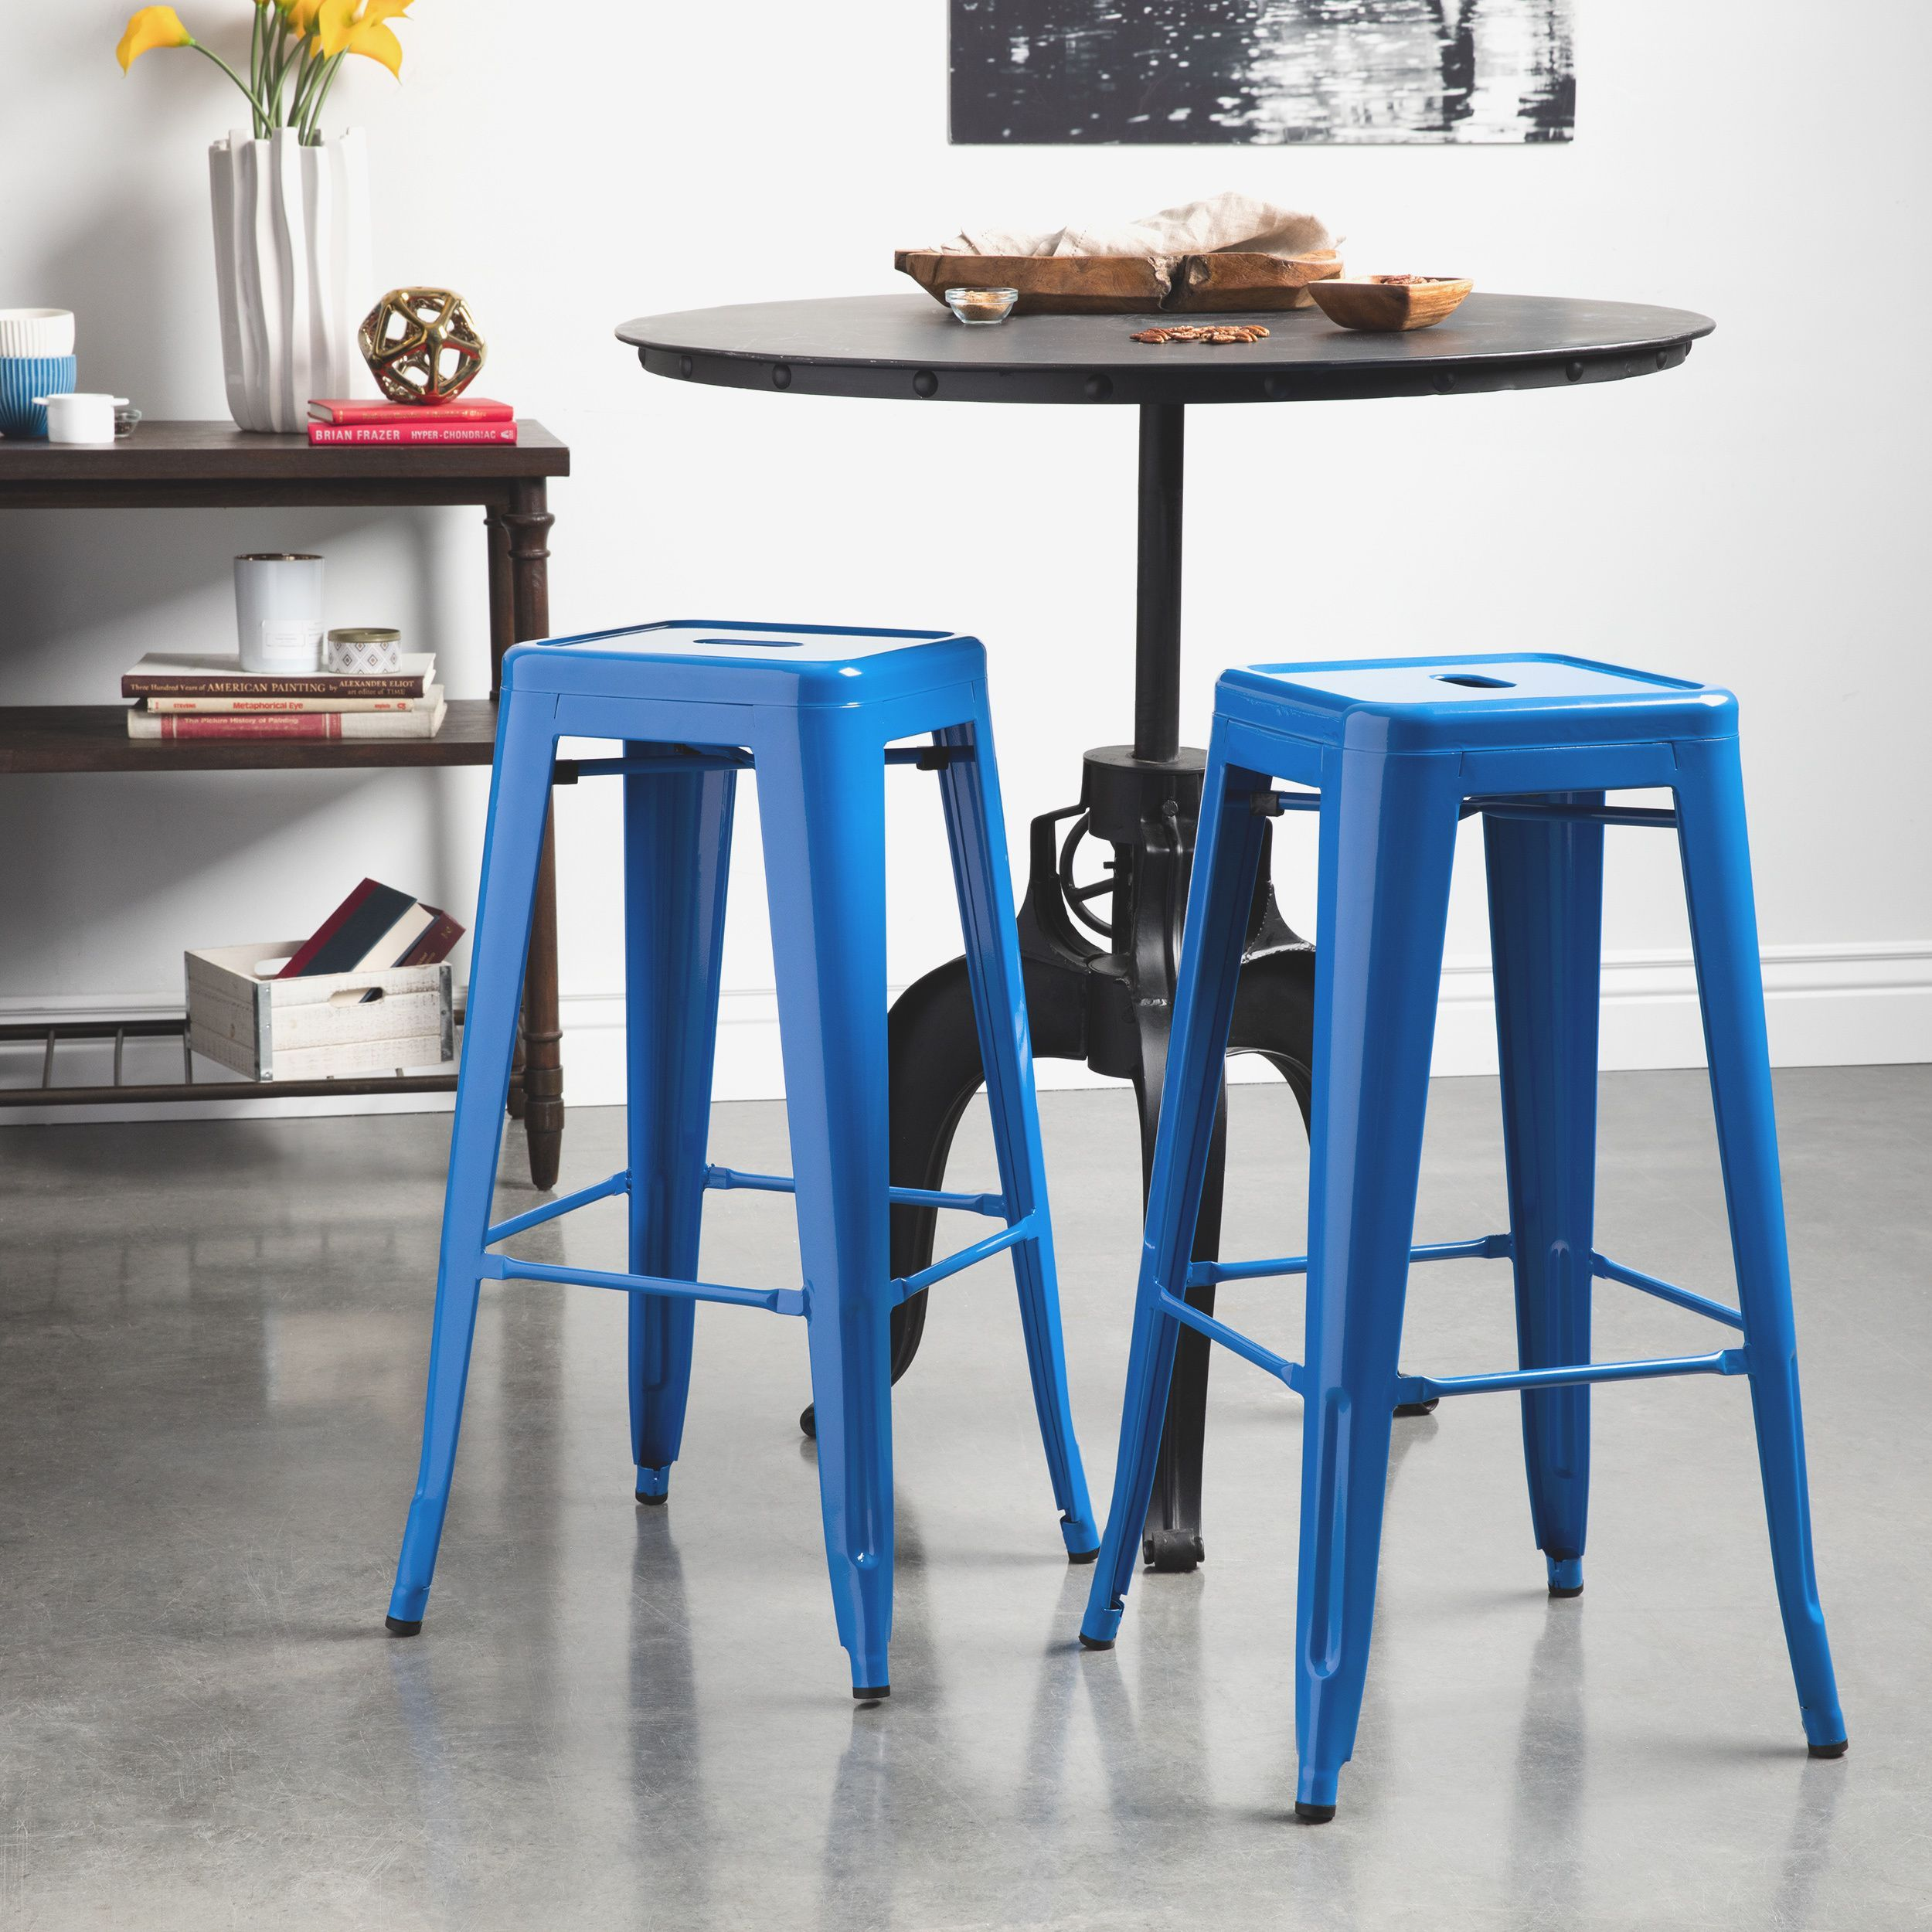 These metal bar stools come in a rich blue color with a glossy ...